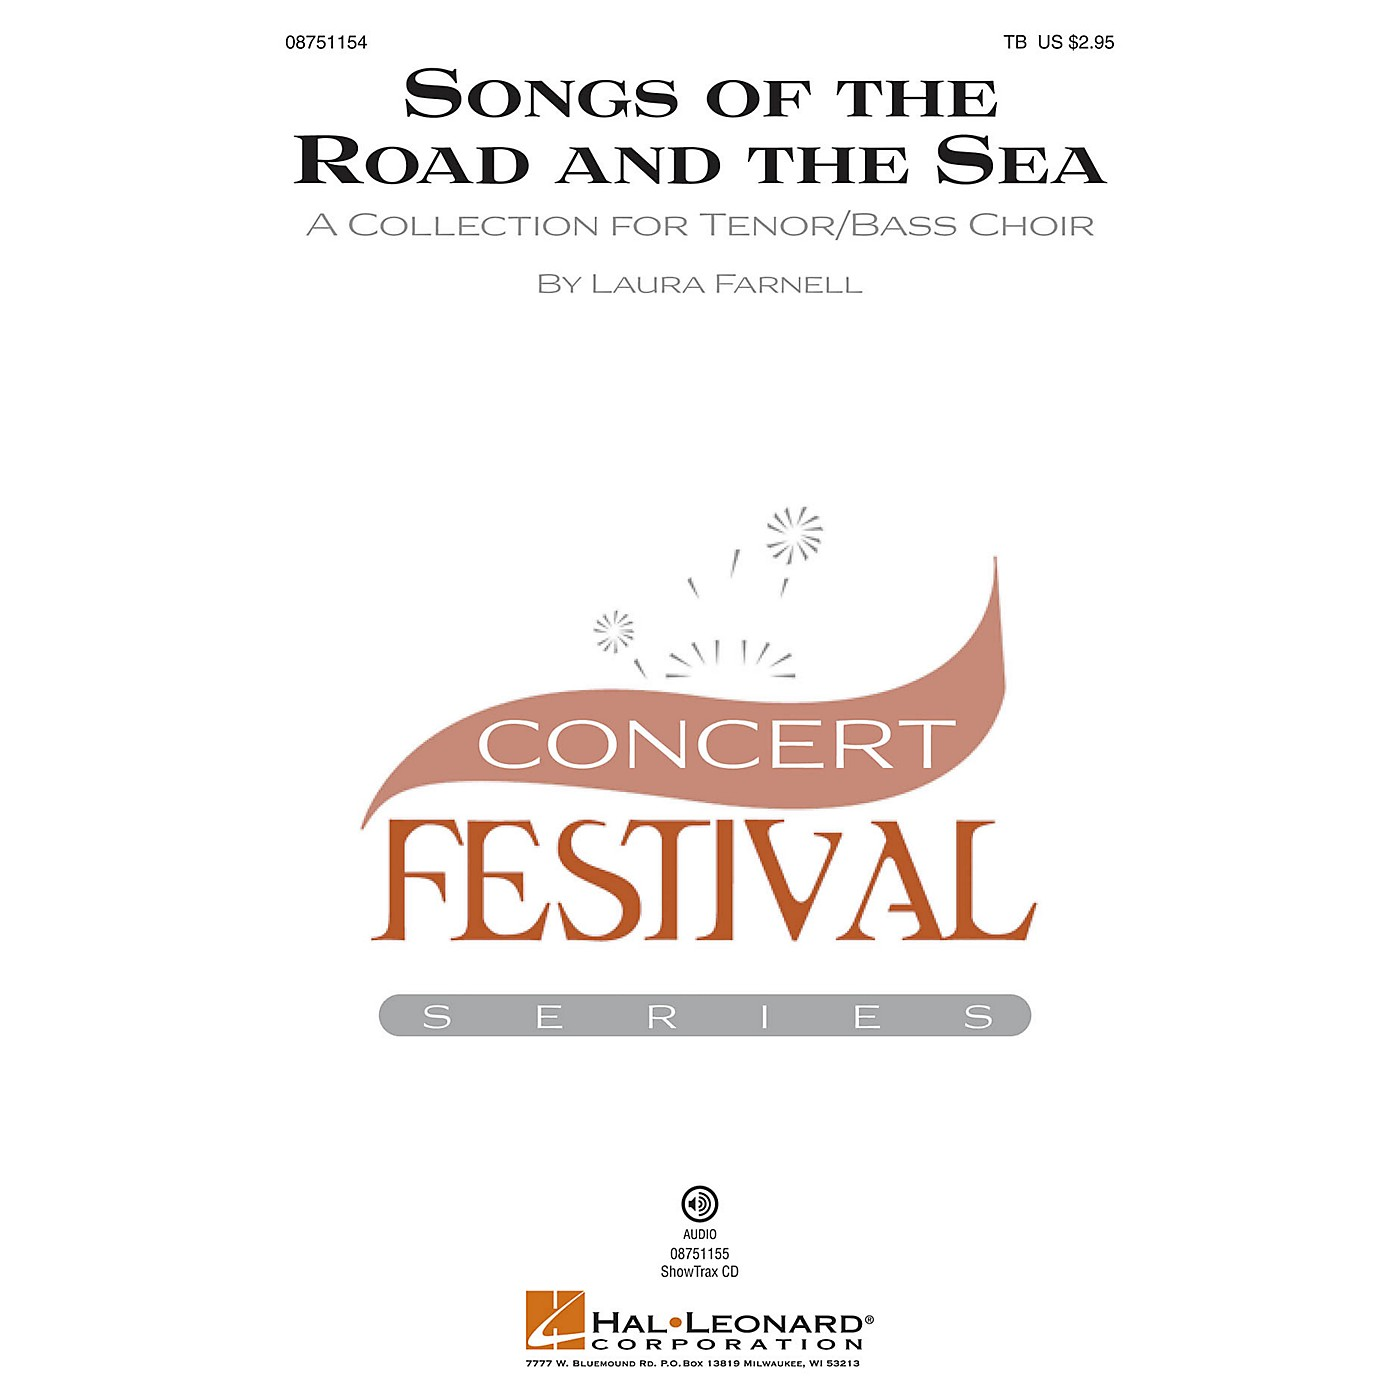 Hal Leonard Songs of the Road and the Sea (A Collection for Tenor Bass Choir) TB composed by Laura Farnell thumbnail